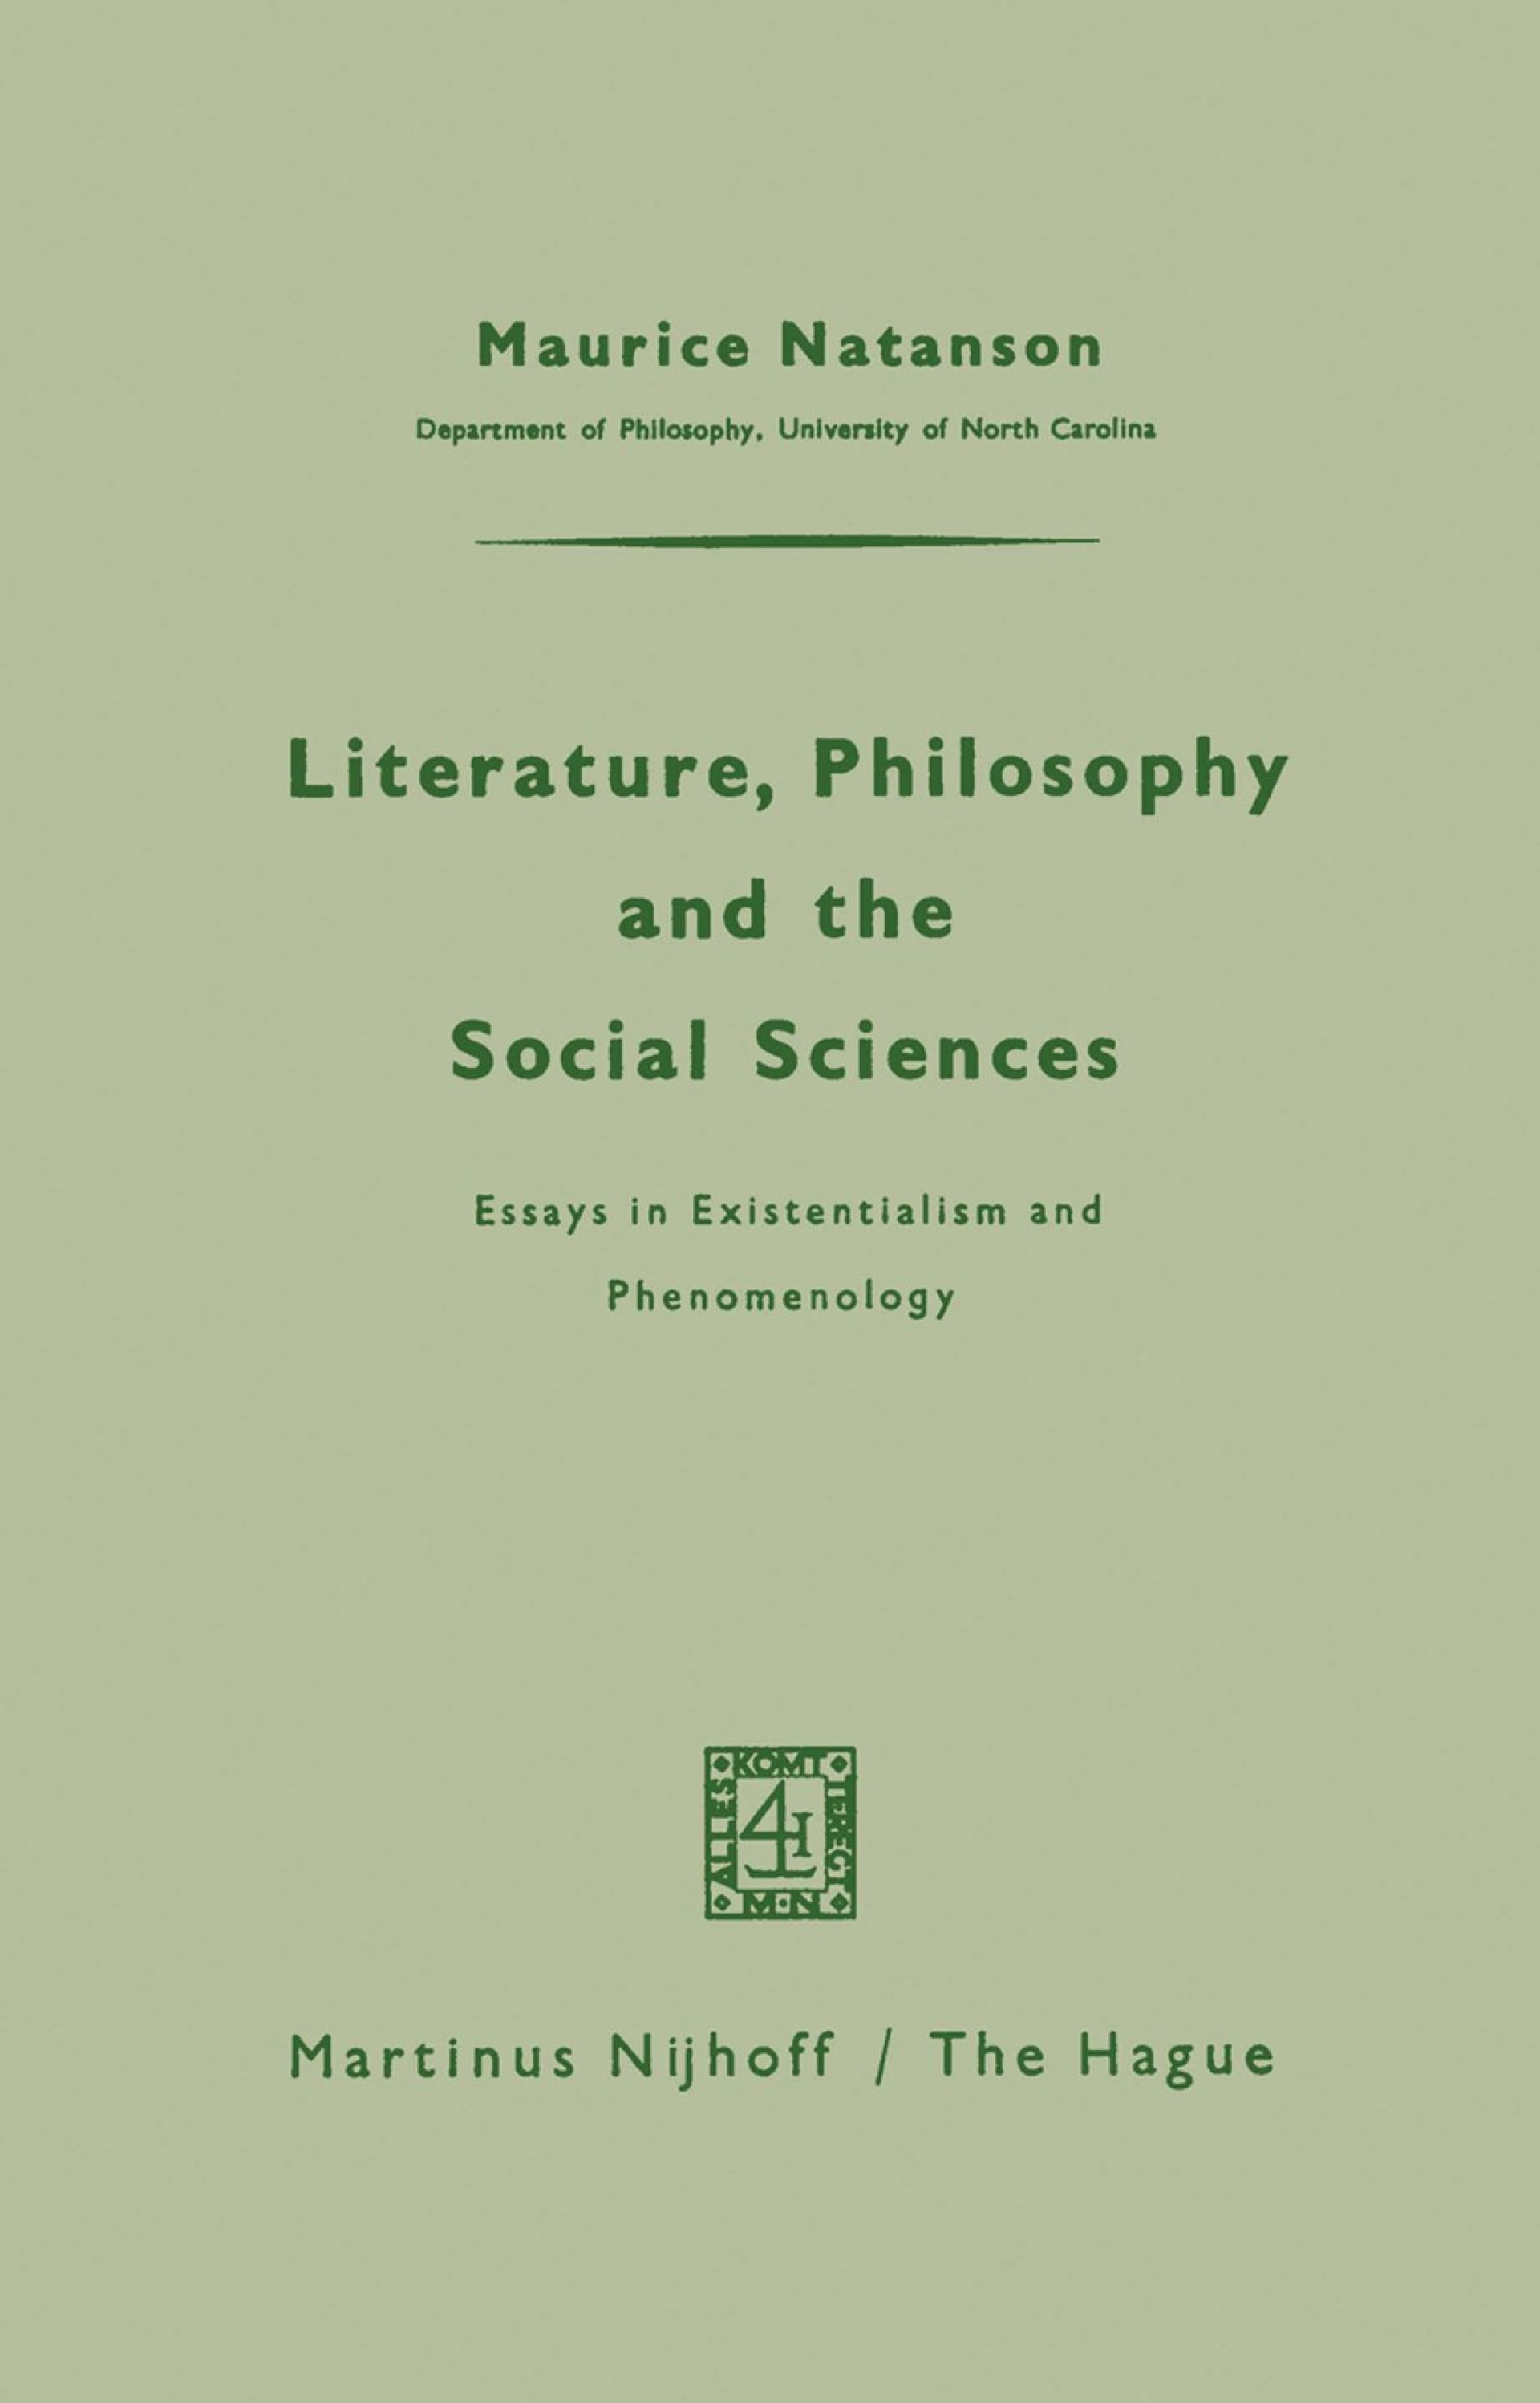 009 Literature Philosophy And The Social Sciences Essay Example Essays In Outstanding Existentialism Ao3 Jean Paul Sartre Pdf 1920